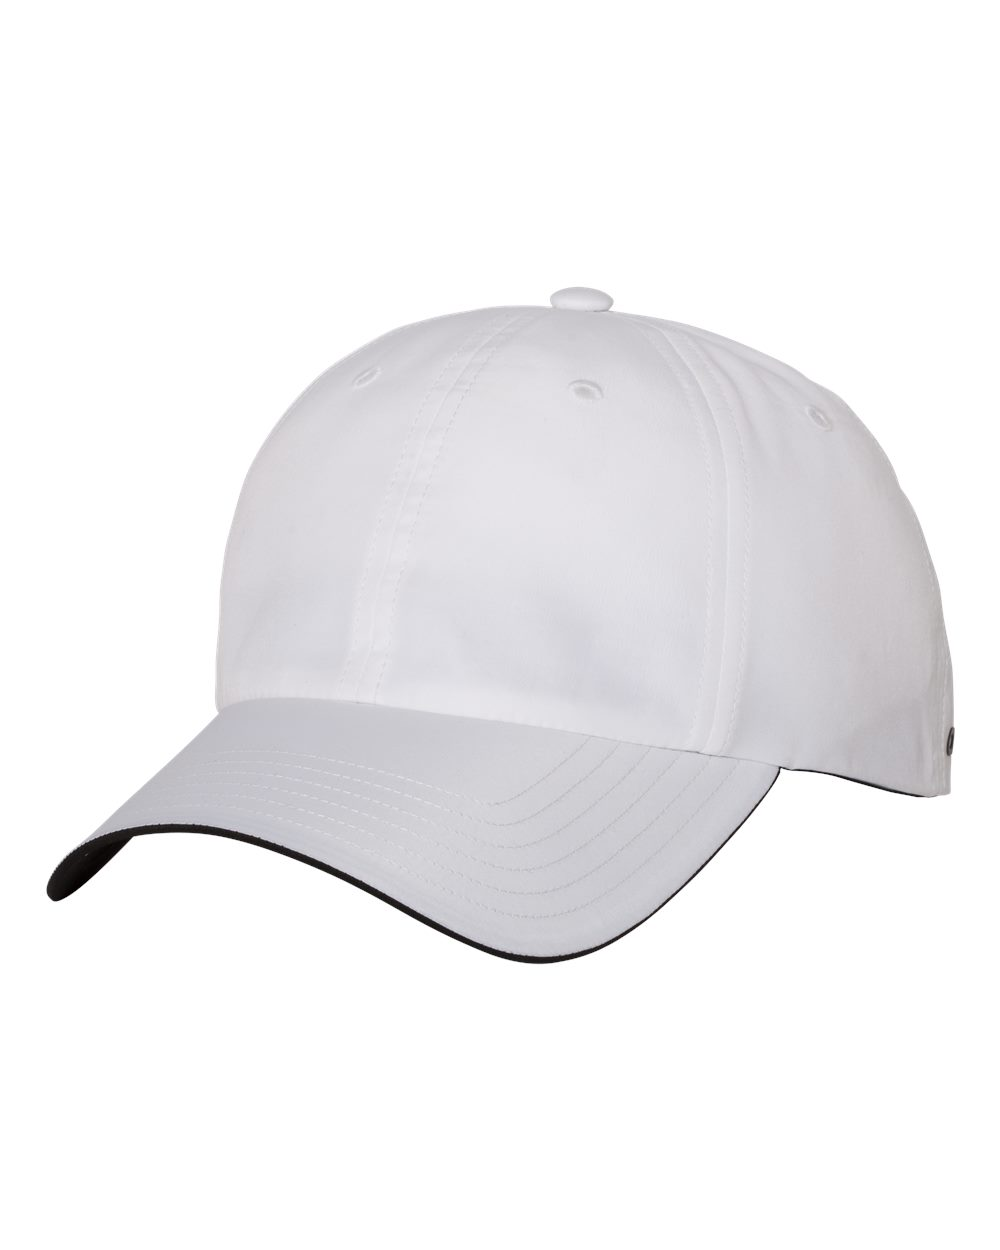 Adidas A605 - Performance Relaxed Poly Cap